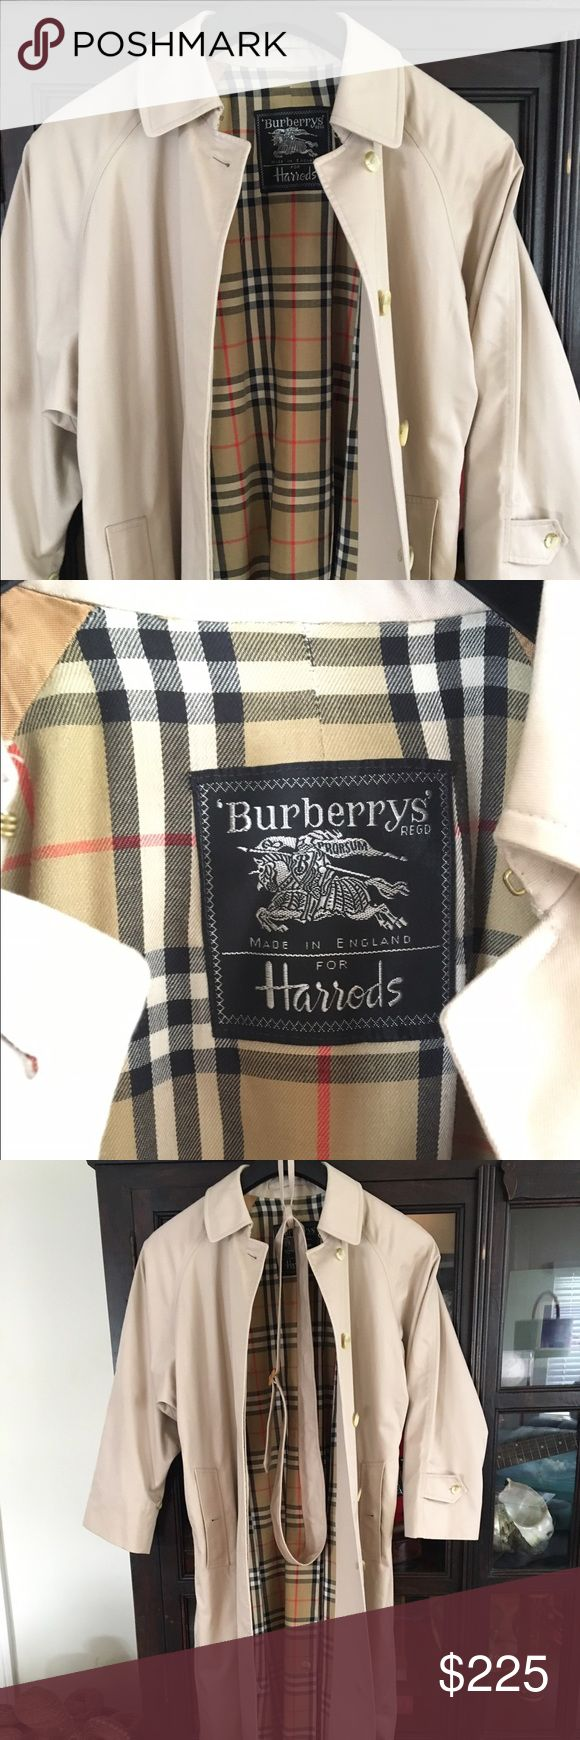 Burberry Classic Women's Rain Coat, Trench Coat The best way to get through depressing April Showers? In the most fabulously chic and iconic raincoat of all time, that's how.  This iconic 100% authentic Burberrys London coat has hidden buttons for a sleek look, long sleeves (that are wide enough to roll up if you want to get playful and show some plaid), a kick pleat in the back that can be buttoned closed and, of course, the iconic Burberrys Prorsum Tartan that gives every bona fide fashion…